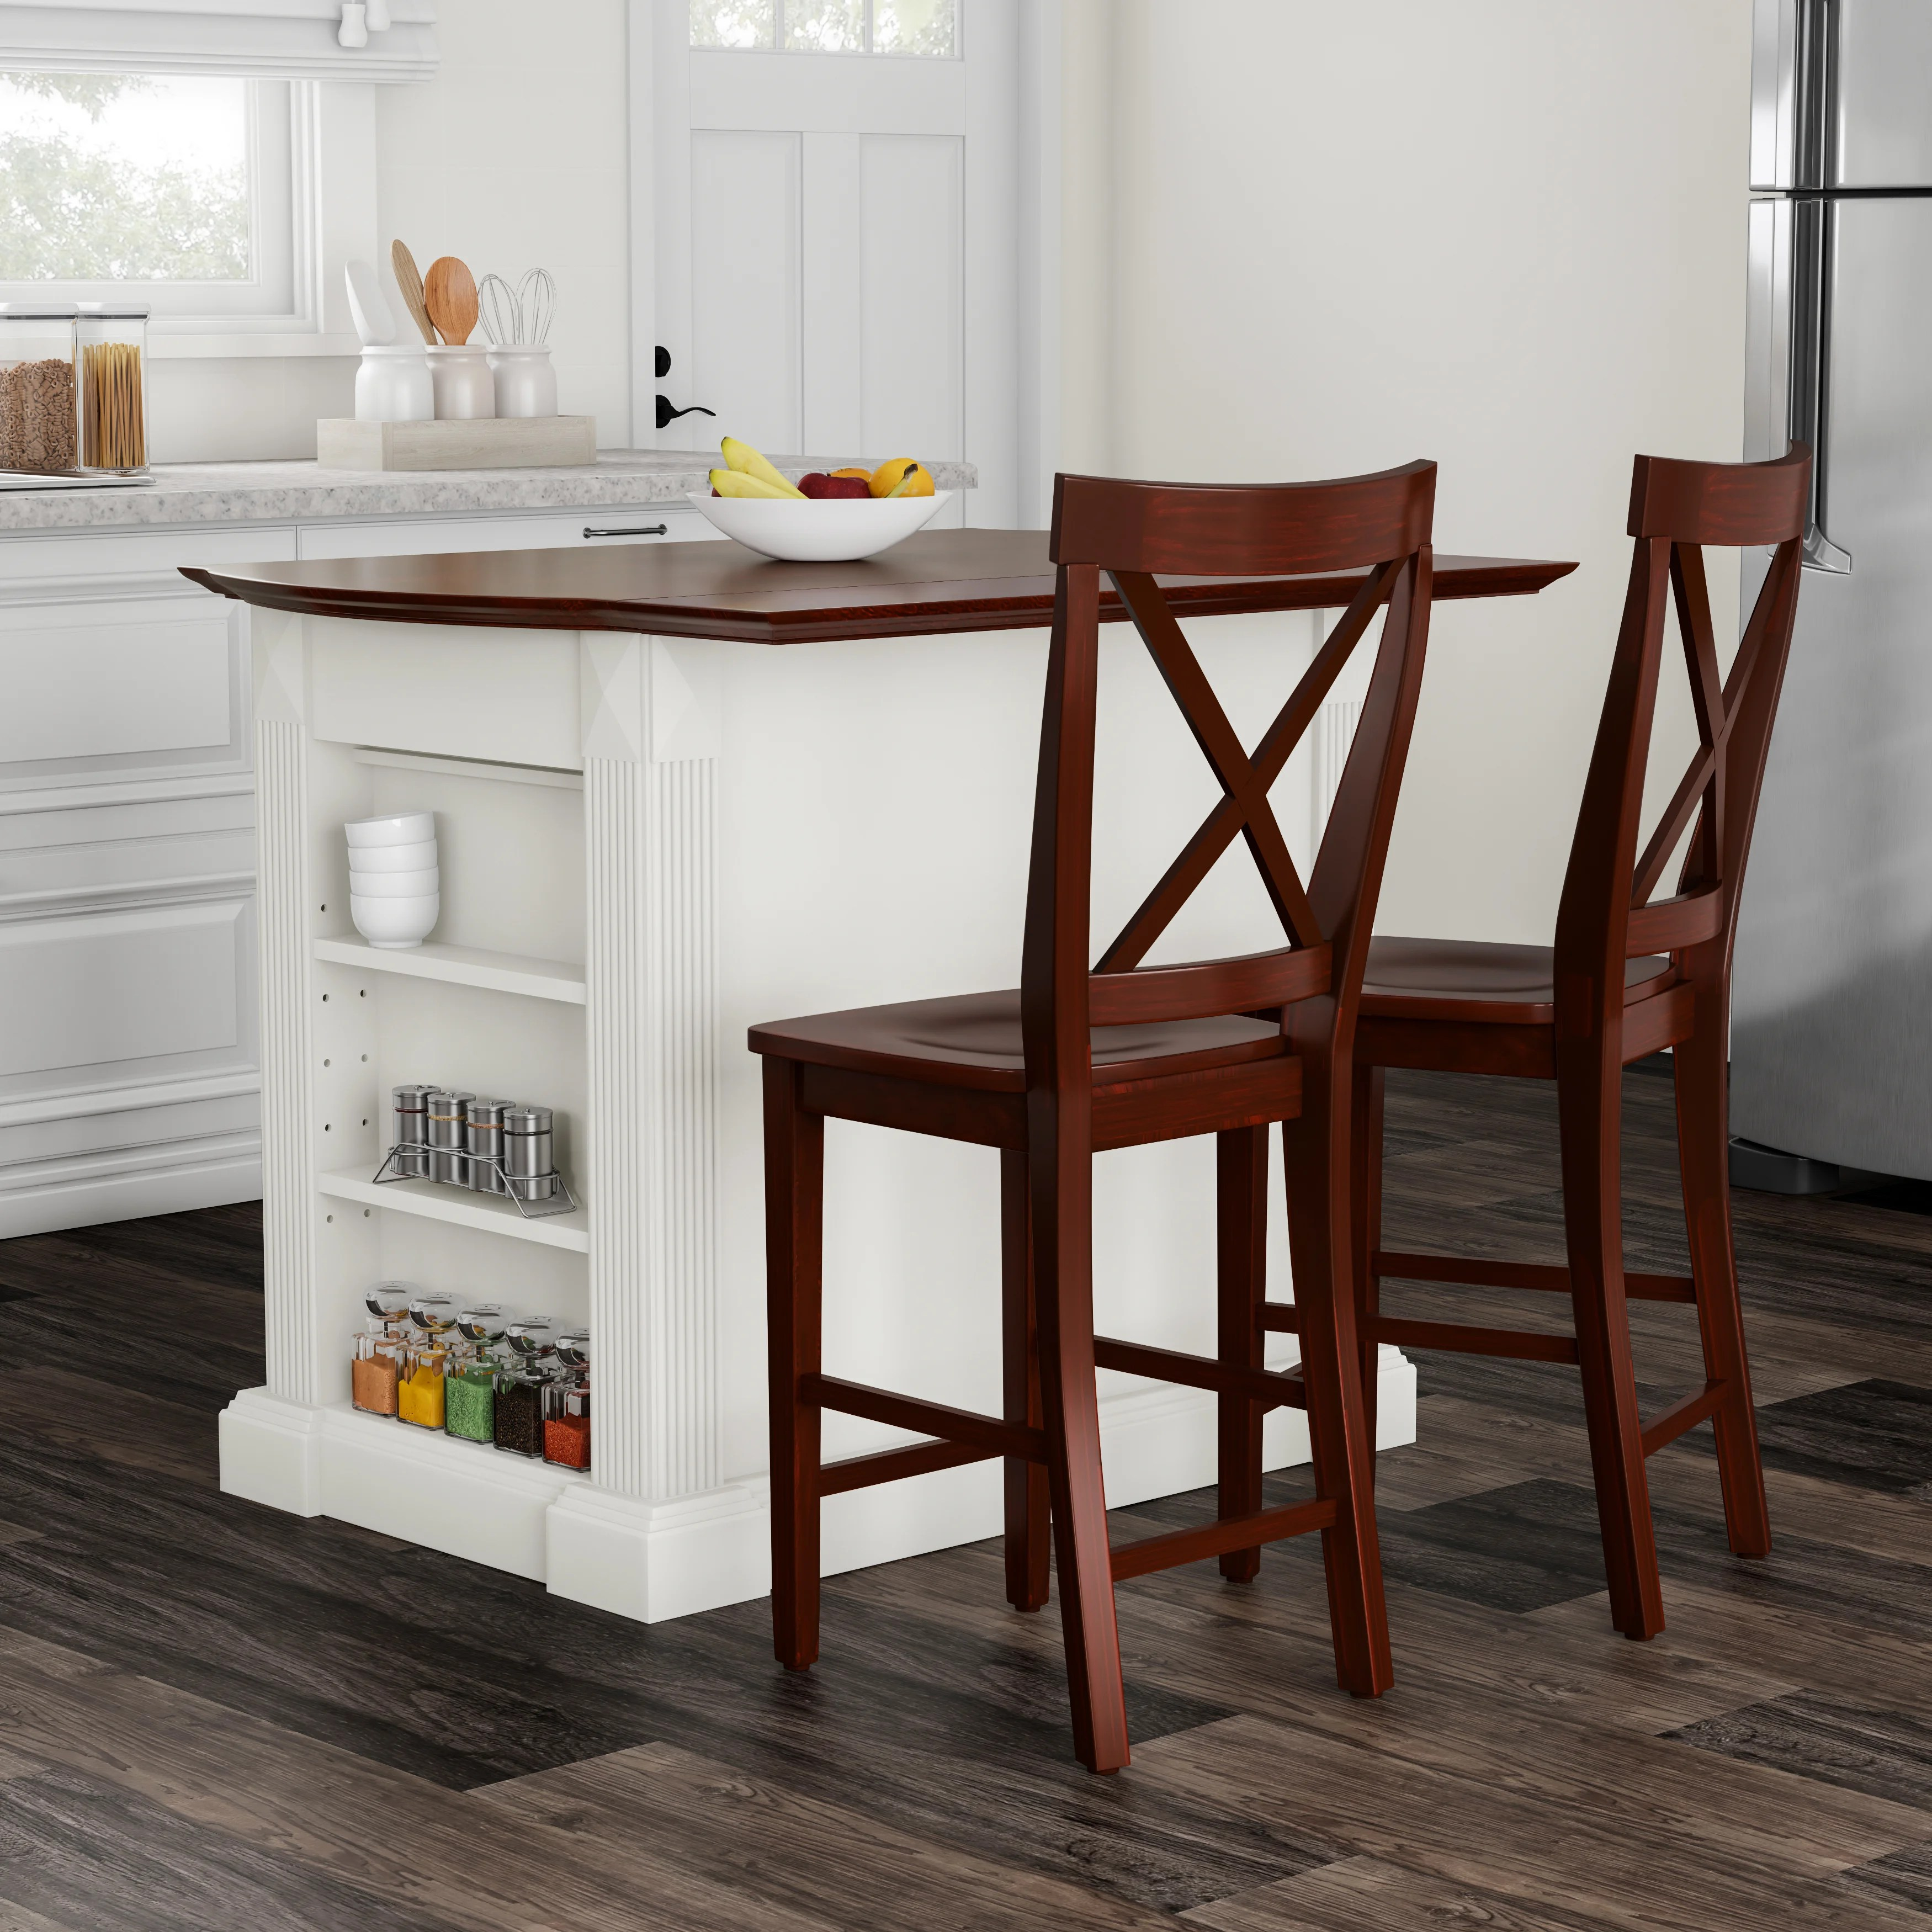 Stools Kitchen Islands Copper Grove Sumpter Drop Leaf Breakfast Bar Top Kitchen Island In White Finish With 24